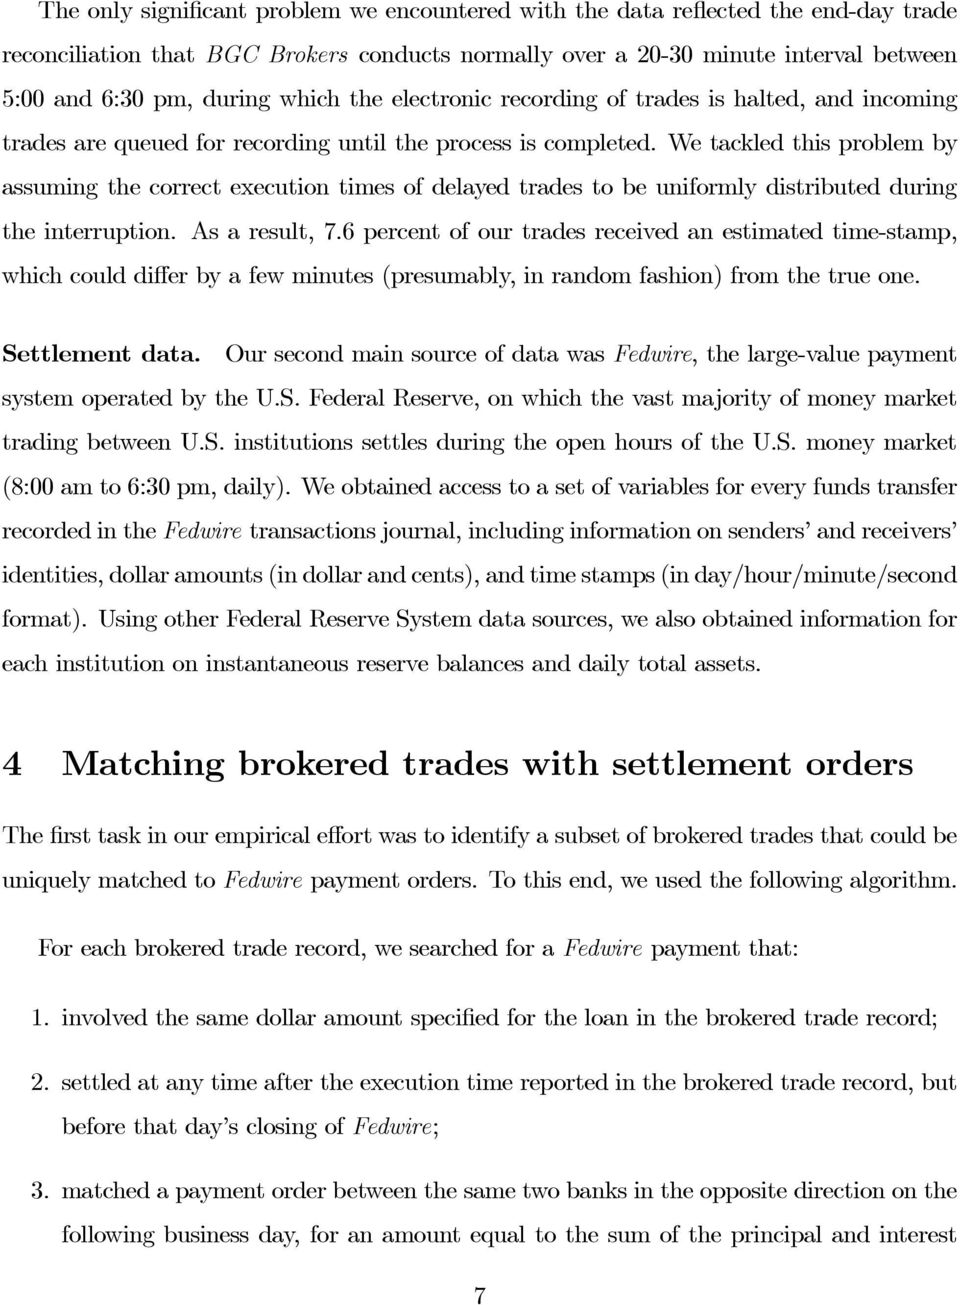 We tackled this problem by assuming the correct execution times of delayed trades to be uniformly distributed during the interruption. As a result, 7.